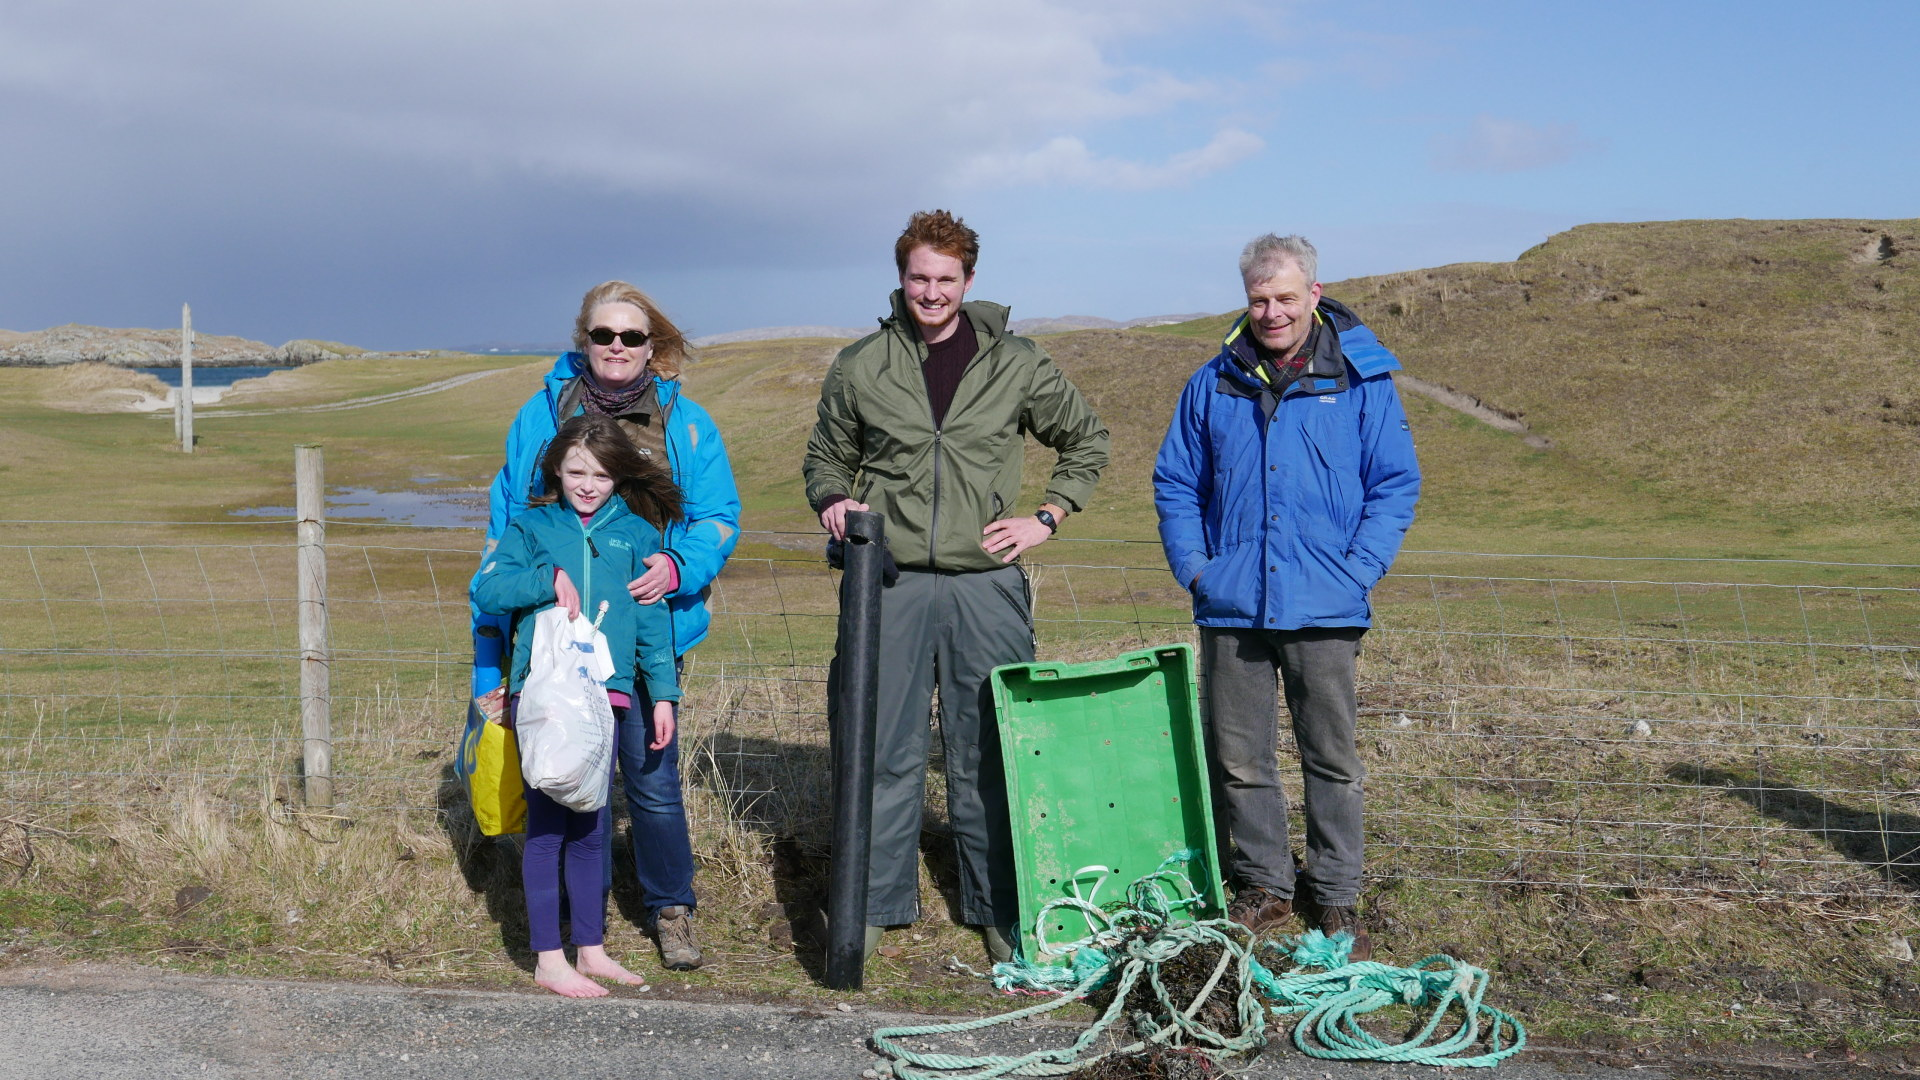 Beach Clean Up - It's a Family Affair in the Hebrides!